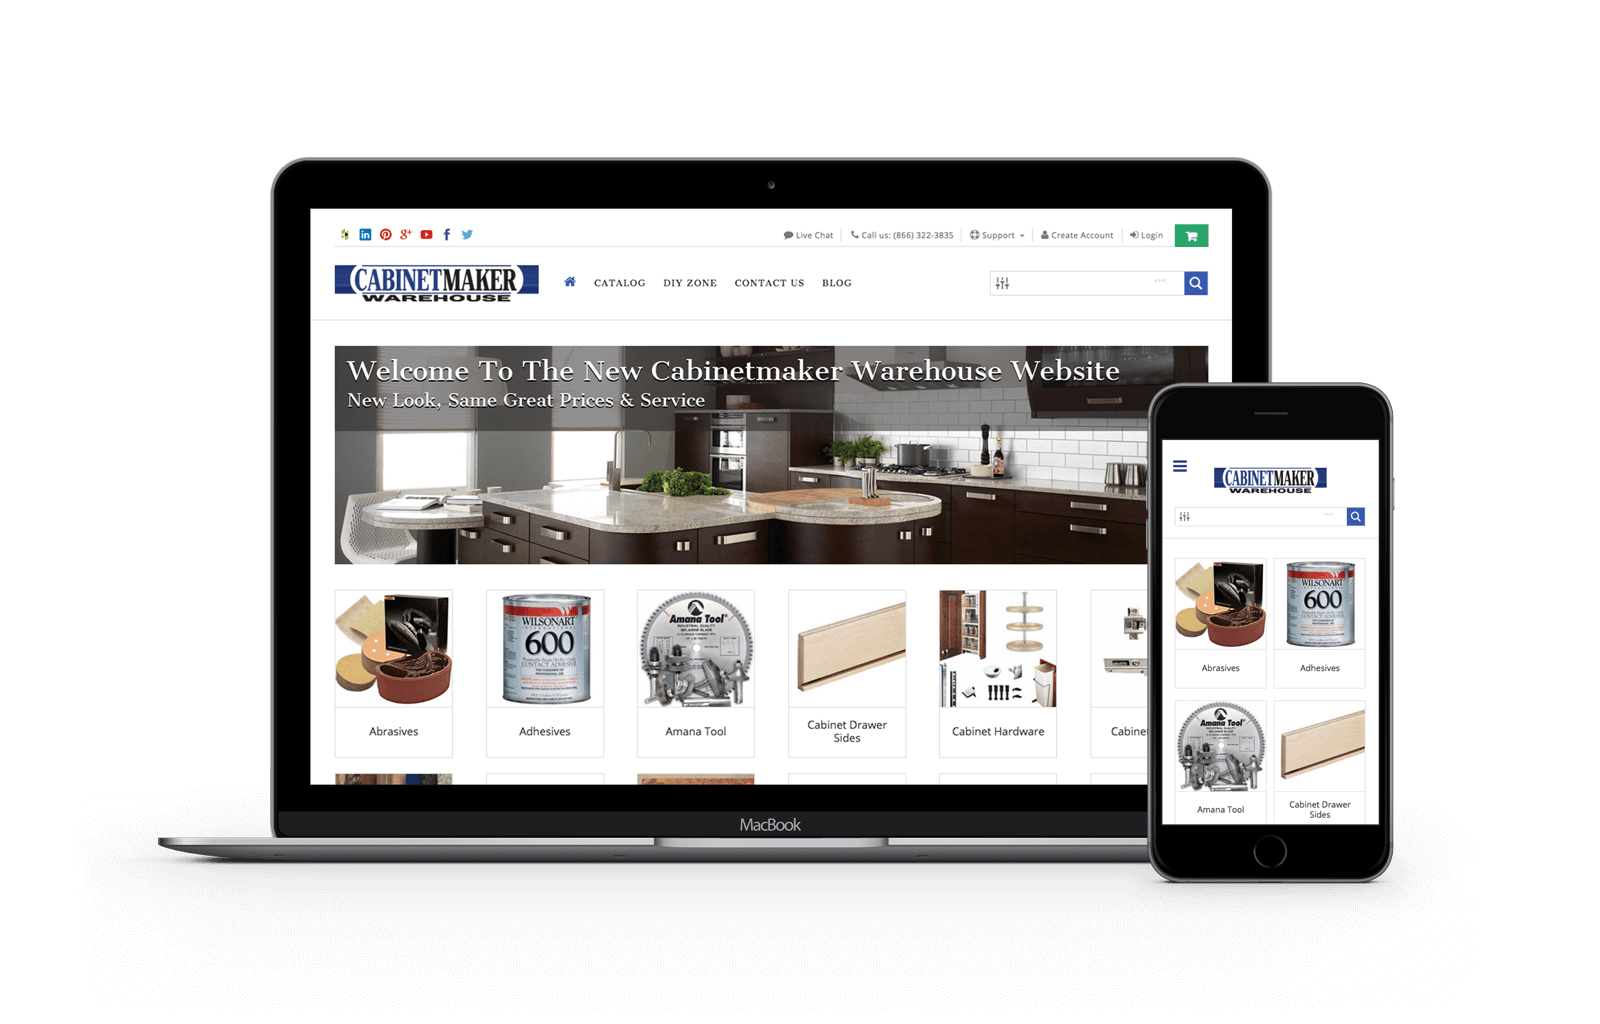 Cabinetmaker Warehouse ecommerce website